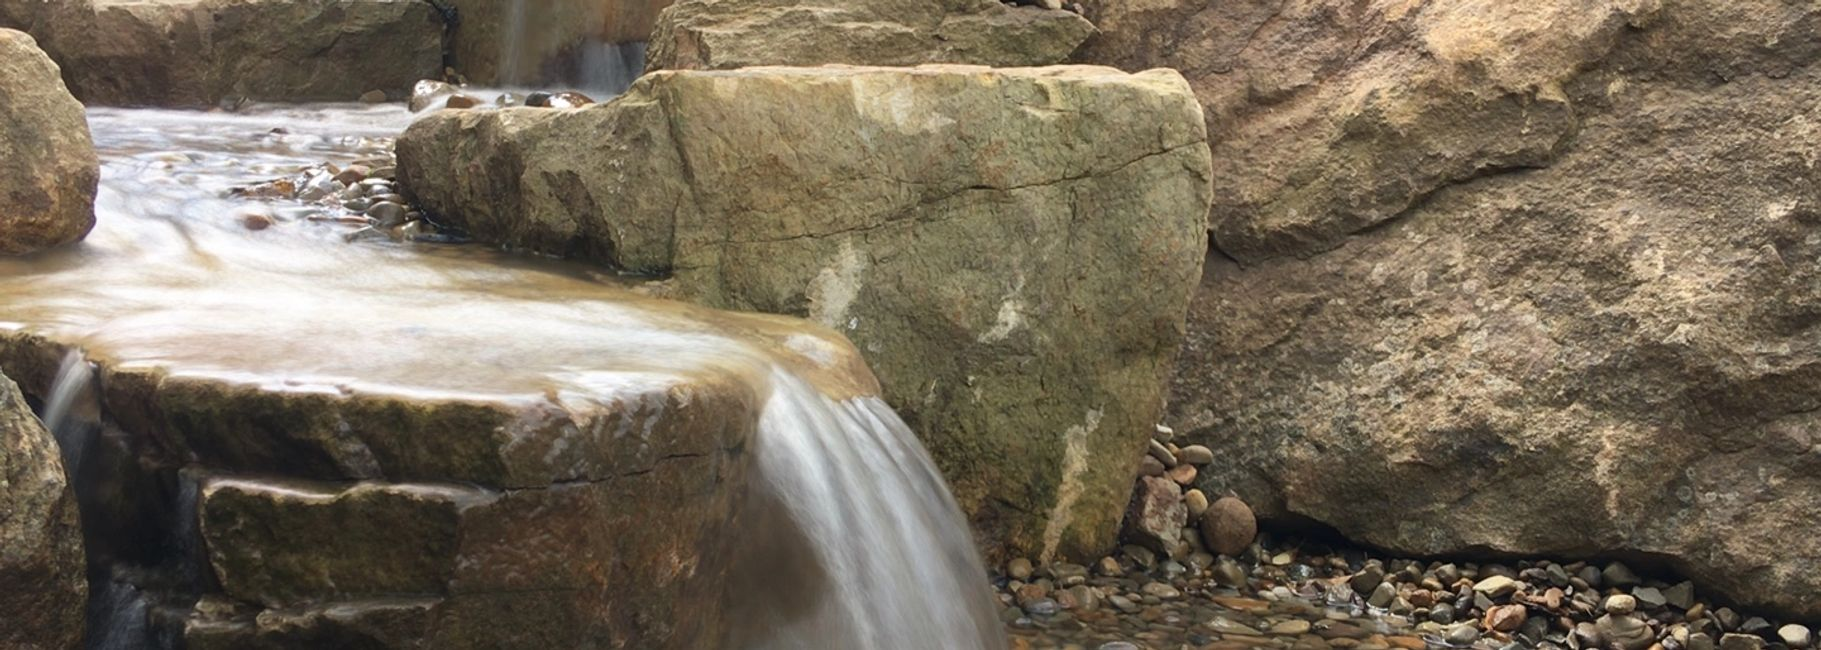 pondless waterfall professional installation Pittsburgh pa aquatic edge